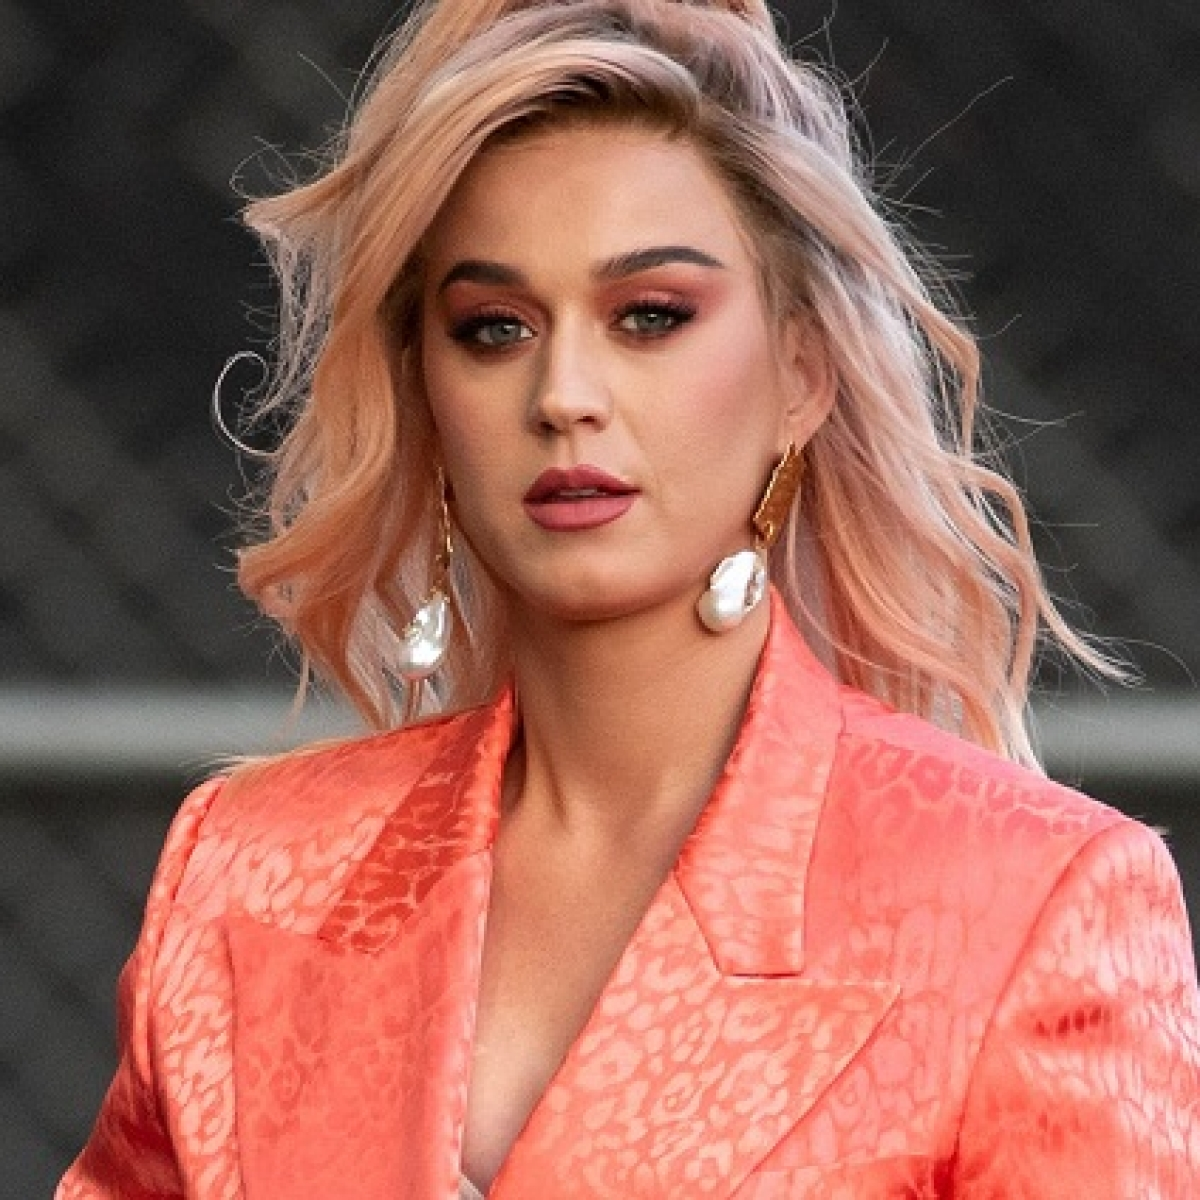 'I hope my set makes you smile', says Katy Perry as she gears up to perform at a digital festival